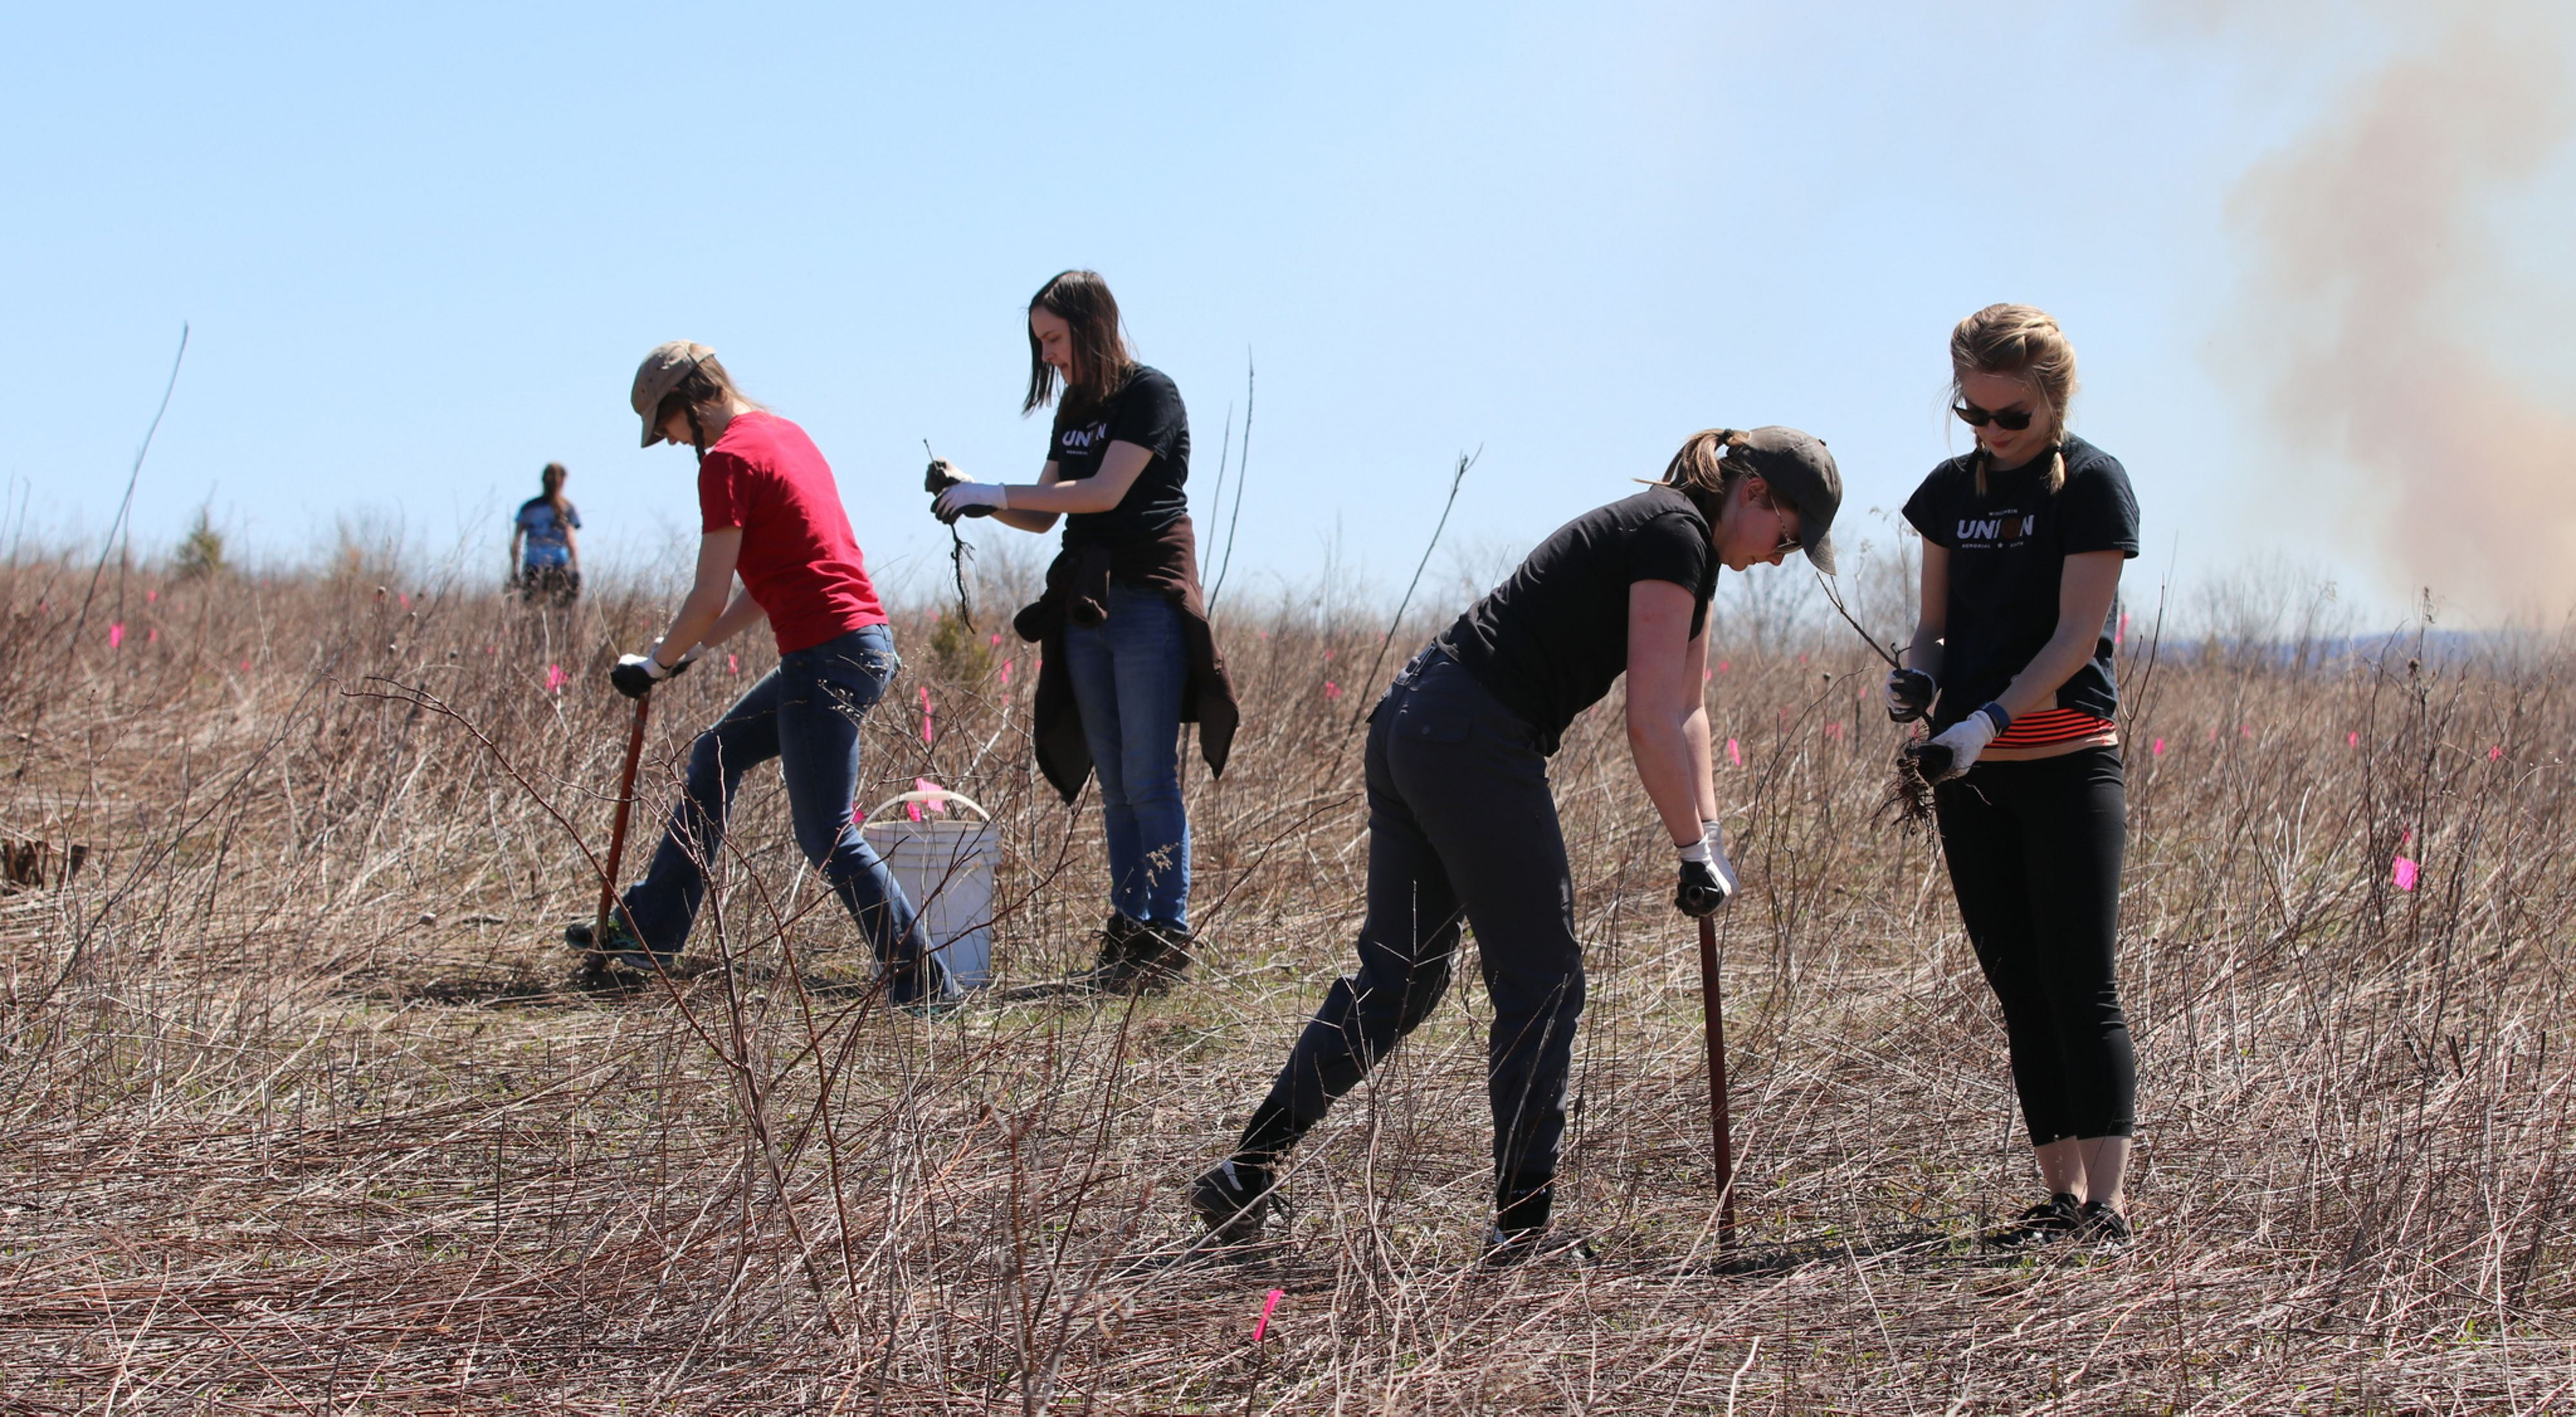 Four volunteers work with tree planting tools in a grassy field.